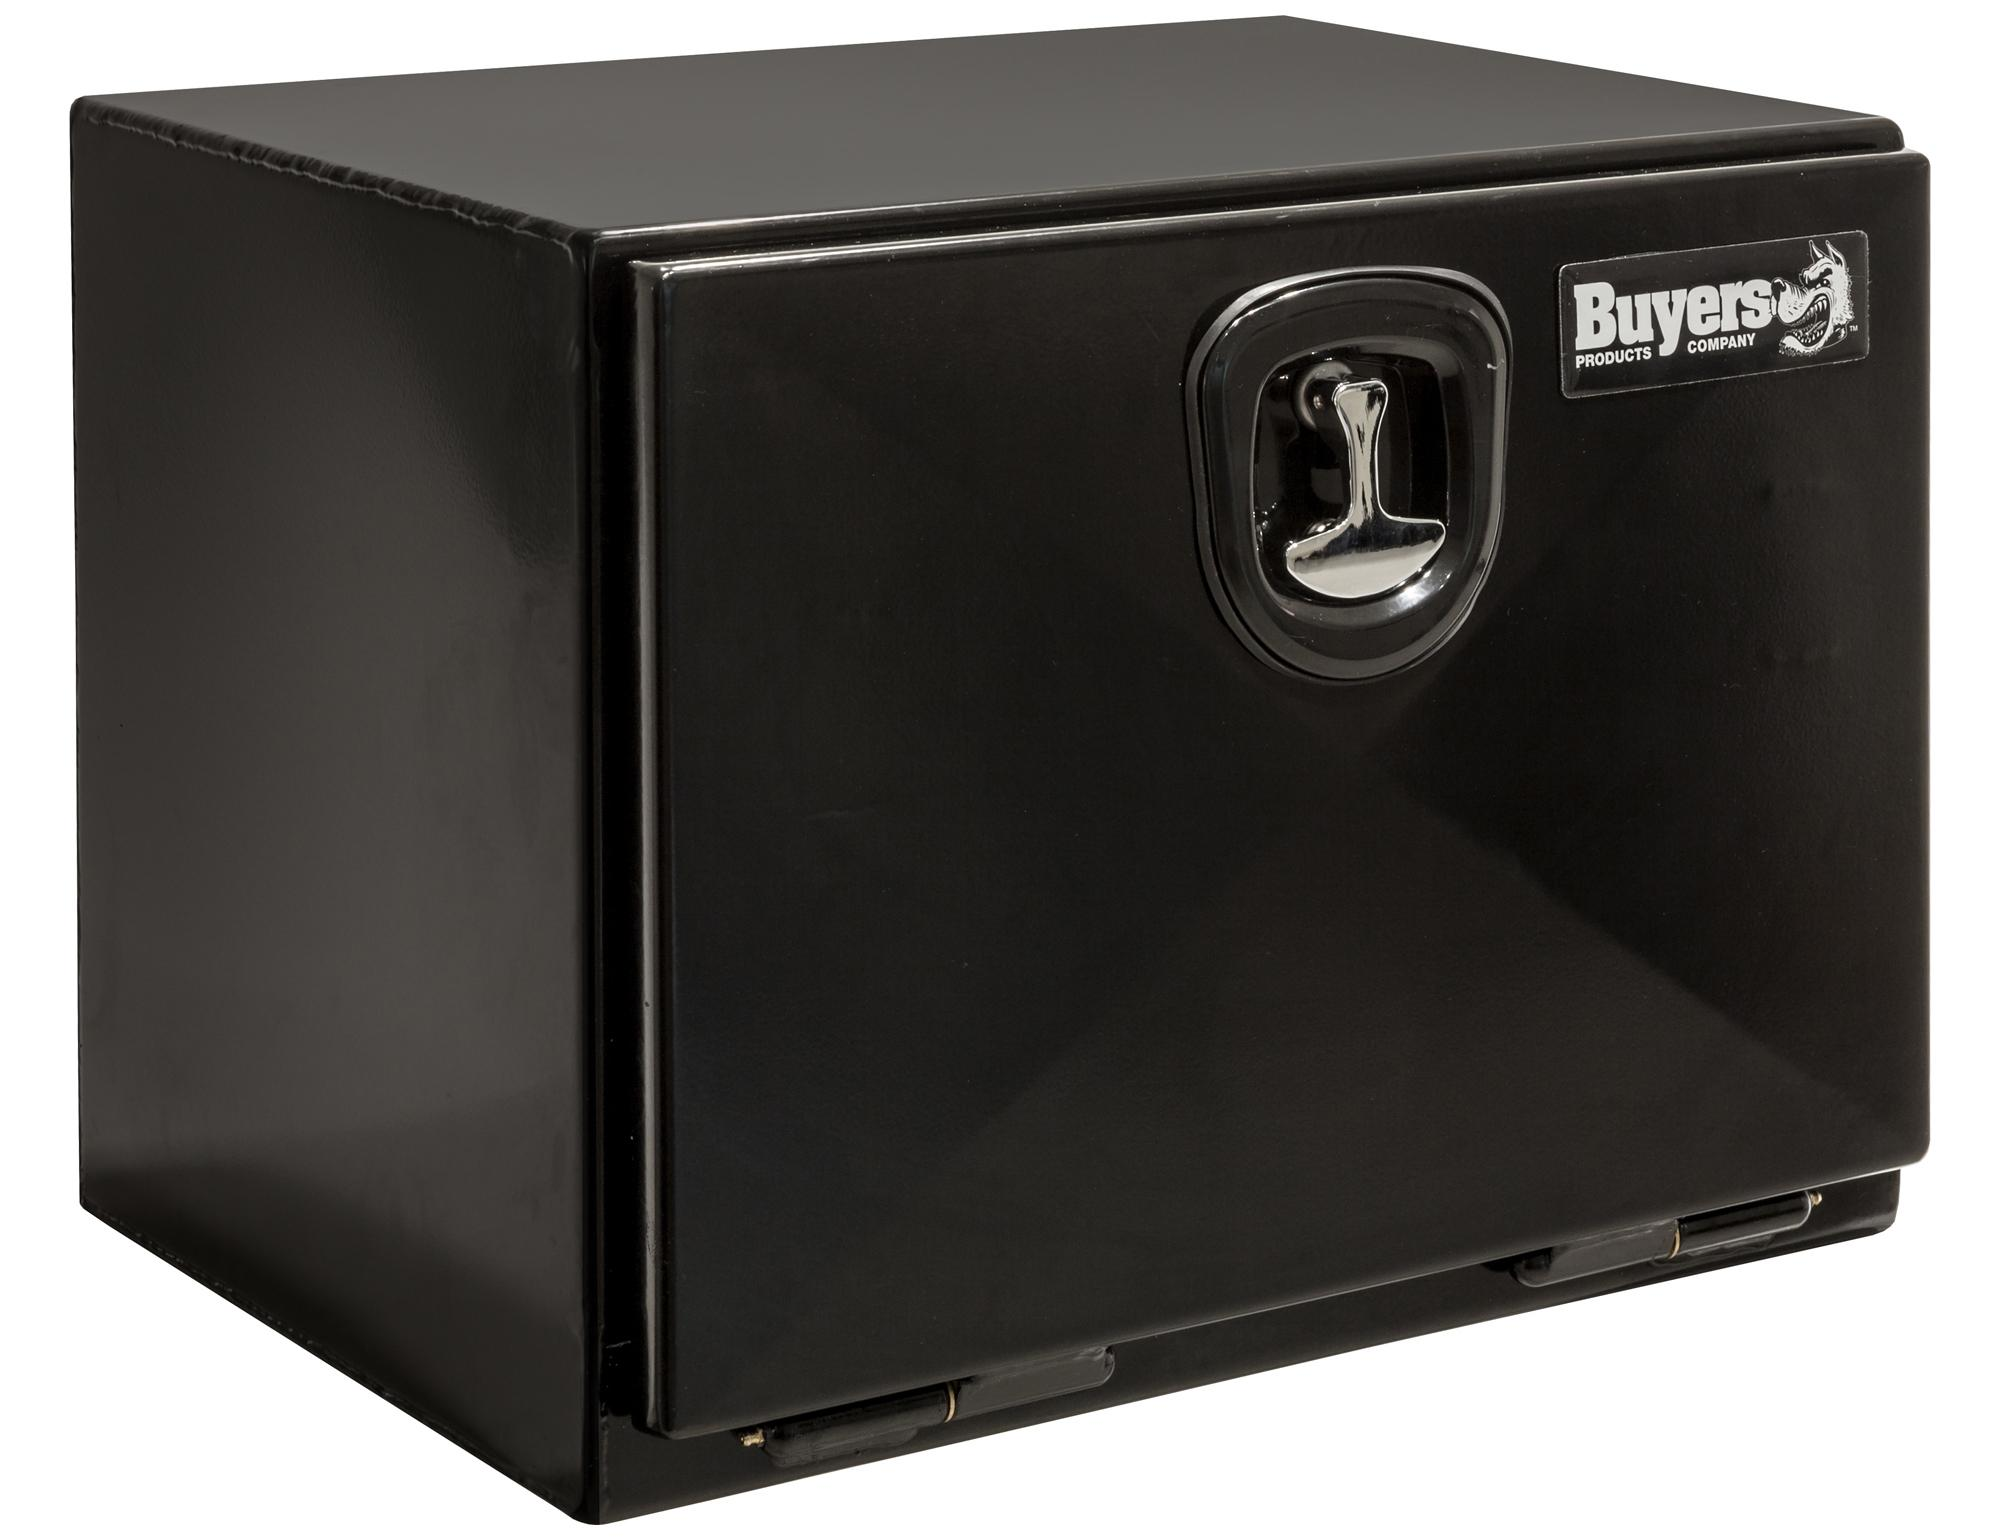 Buyers Products 1702900 Toolbox 18X18X24, SST T-HDL, Primed Powder